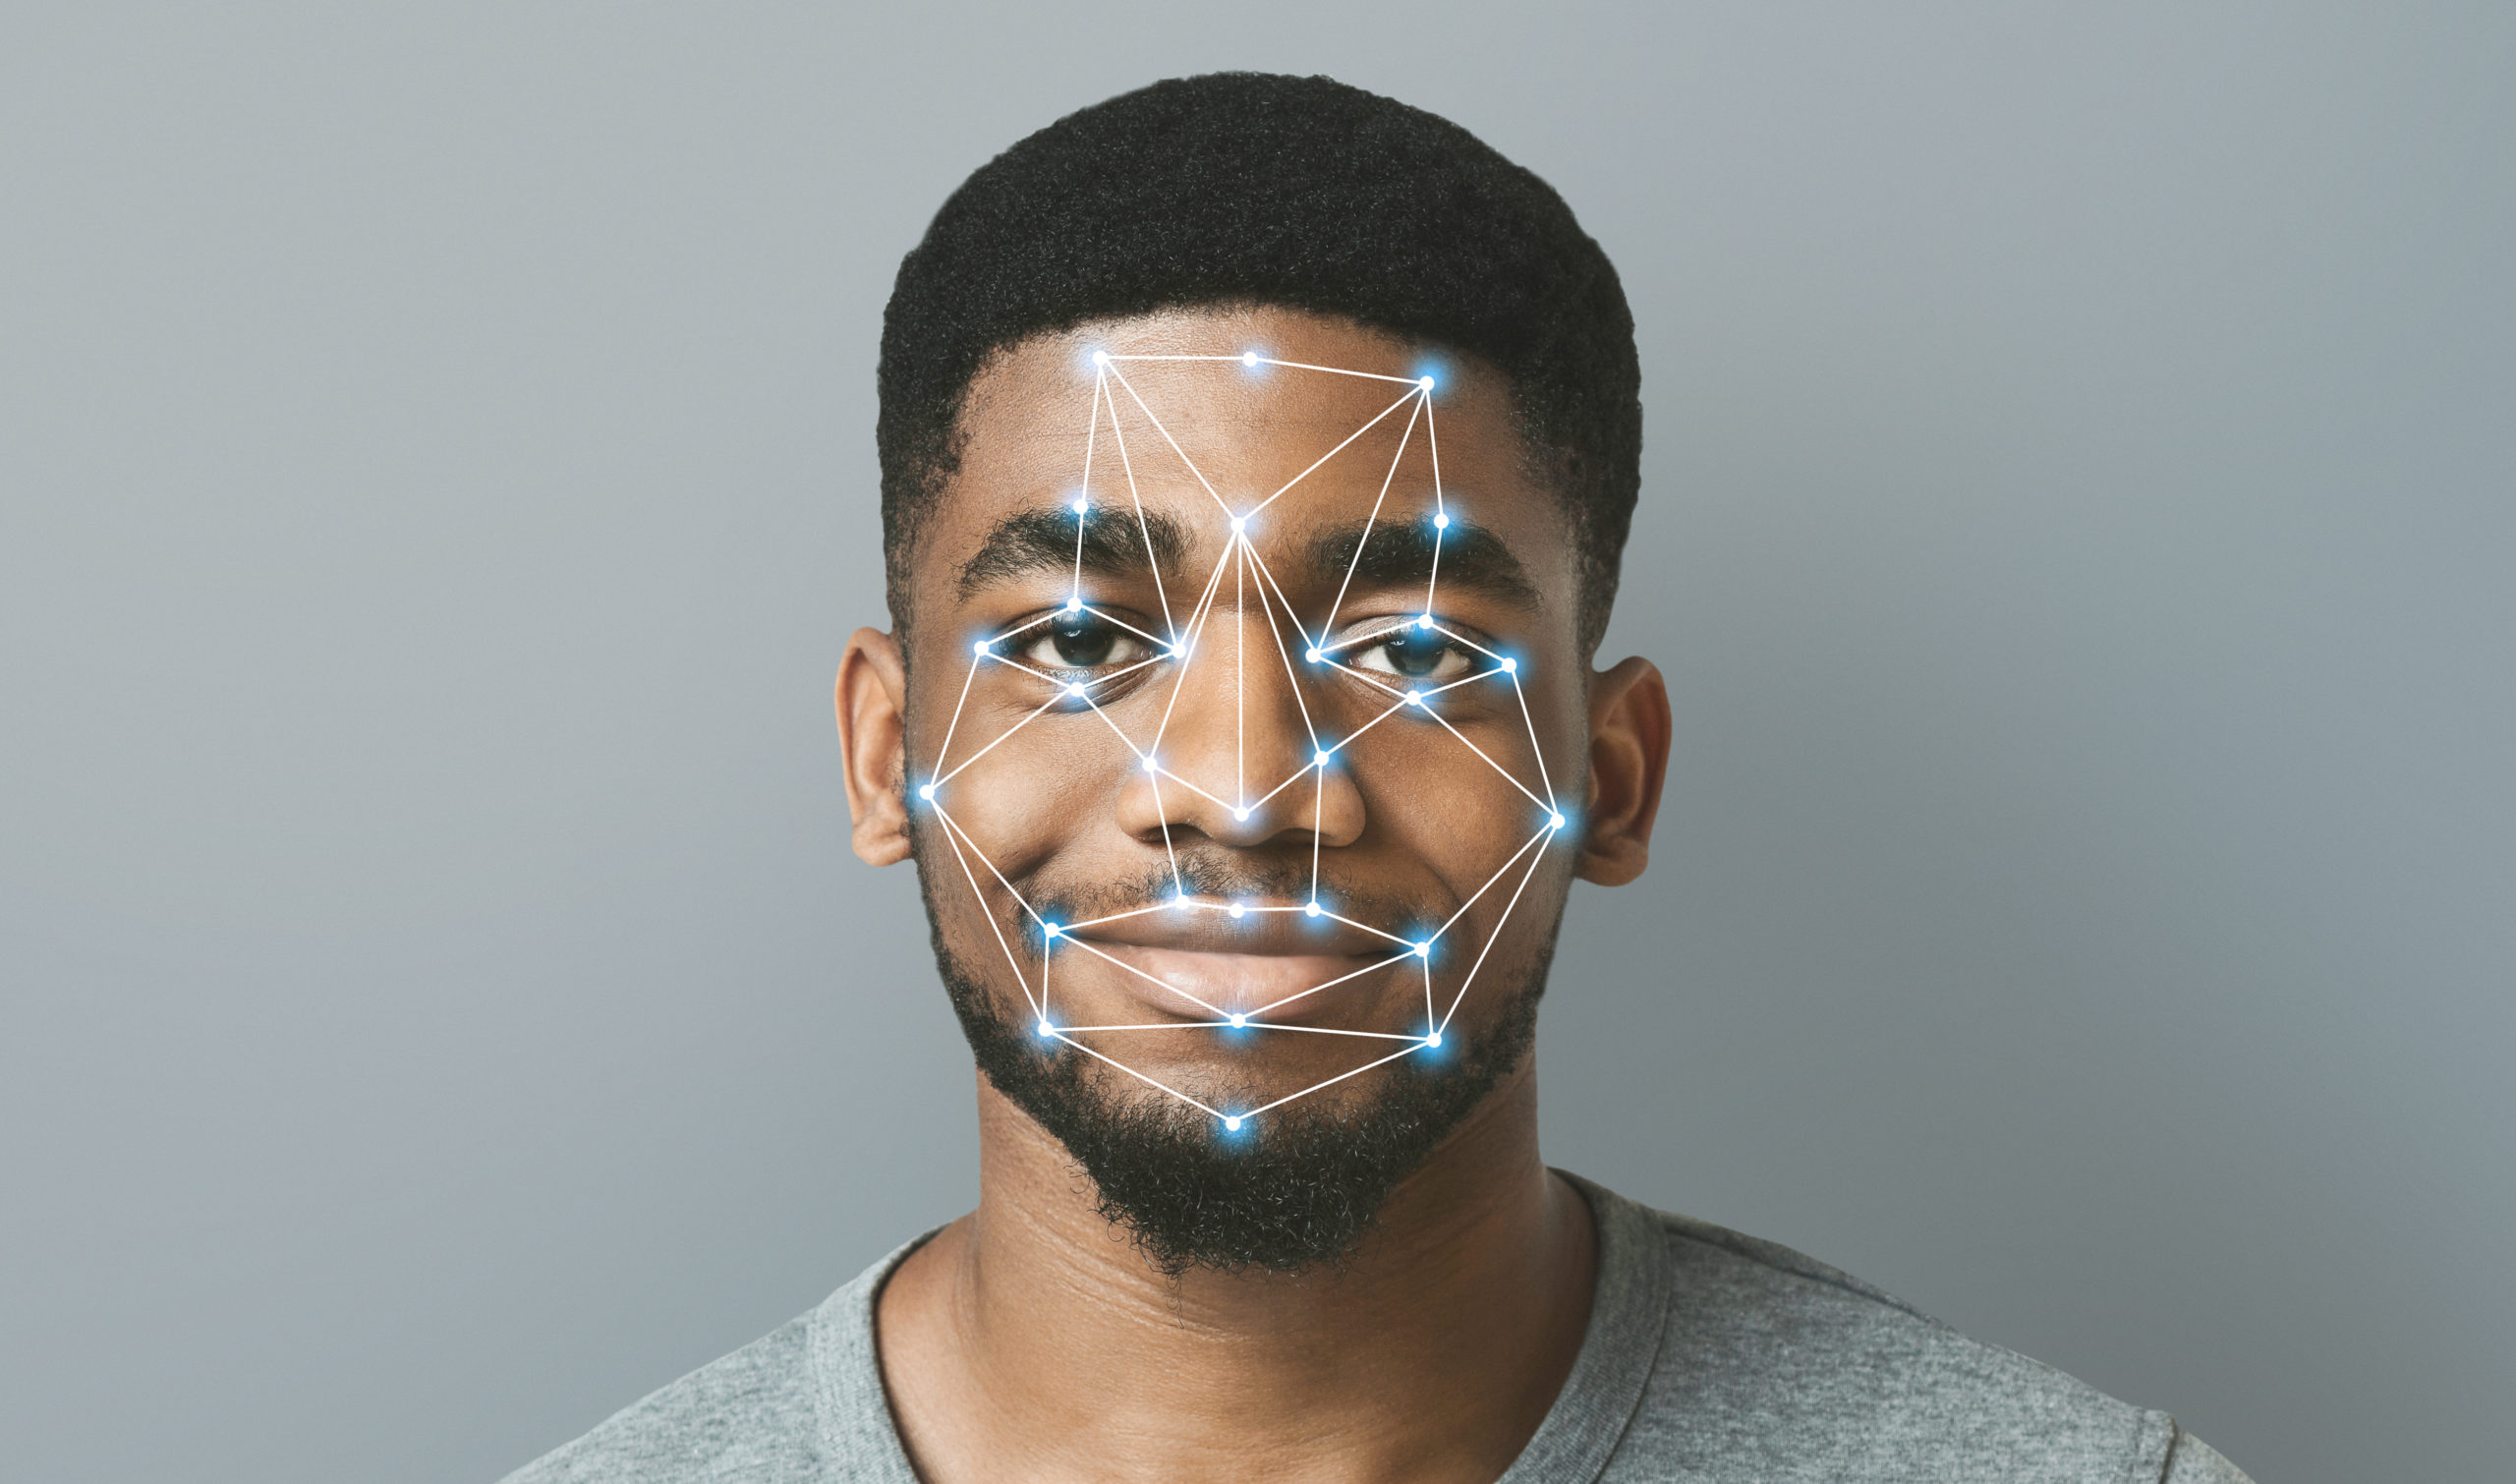 TMI's Algernon Austin in USA Today Op-Ed: My phone's facial recognition technology doesn't see me, a black man. But it gets worse.